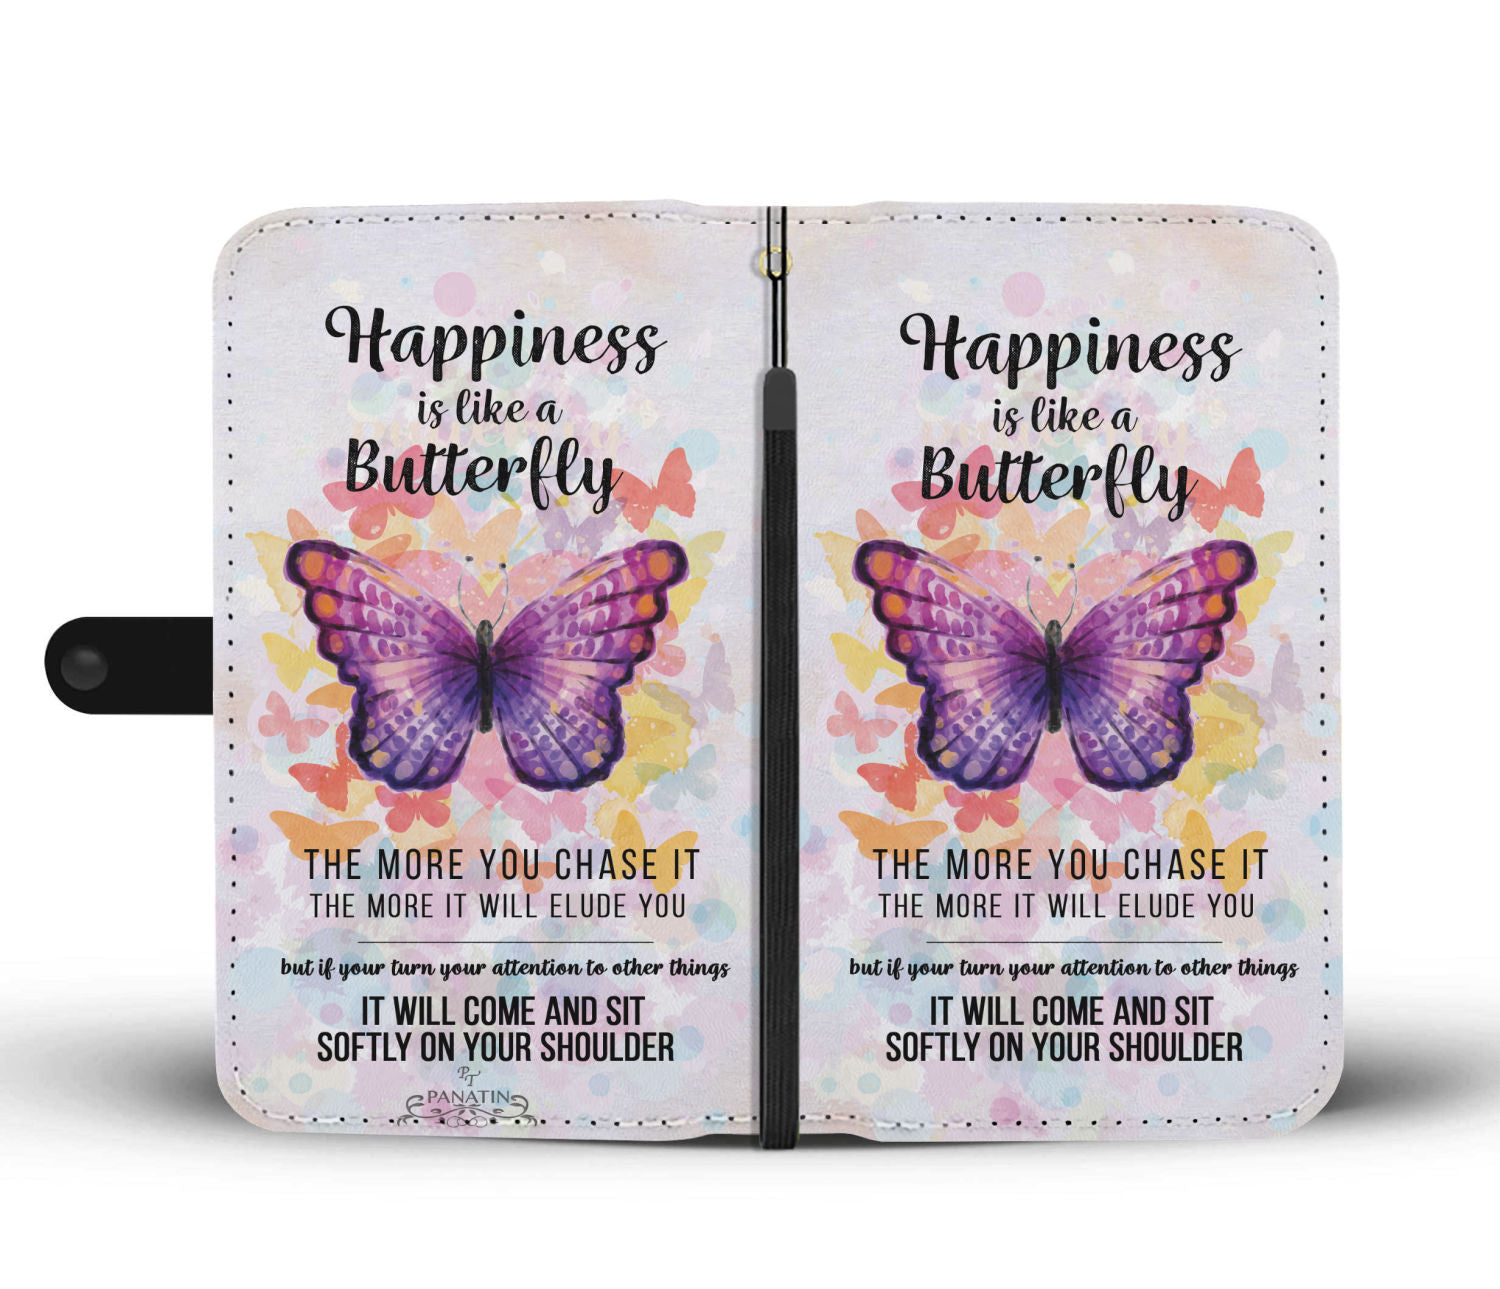 Hand-Crafted Custom-Designed Happiness Butterfly Love Wallet Phone Case